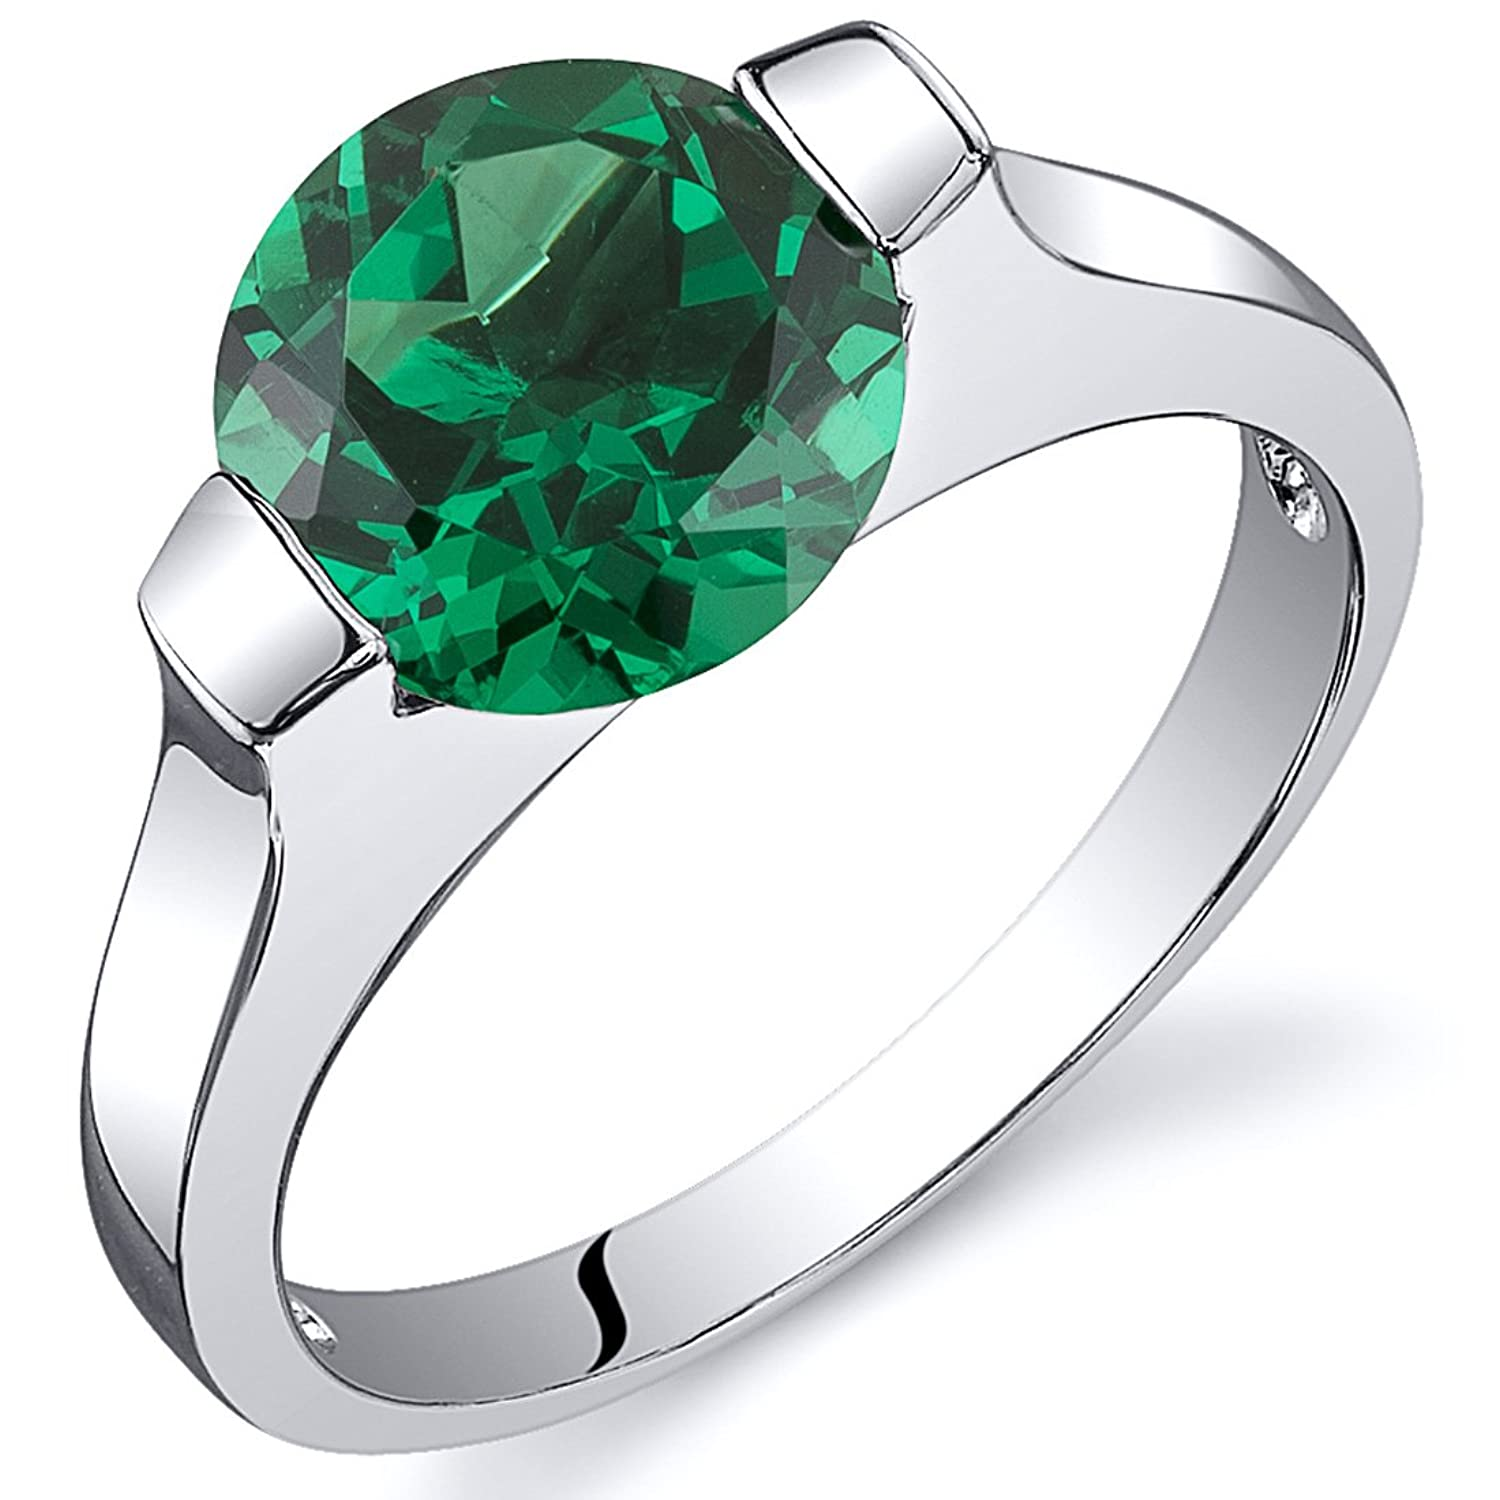 Bezel Set 1.75 carats Simulated Emerald Engagement Ring in Sterling Silver Rhodium Nickel Finish Available in Sizes 5 to 9